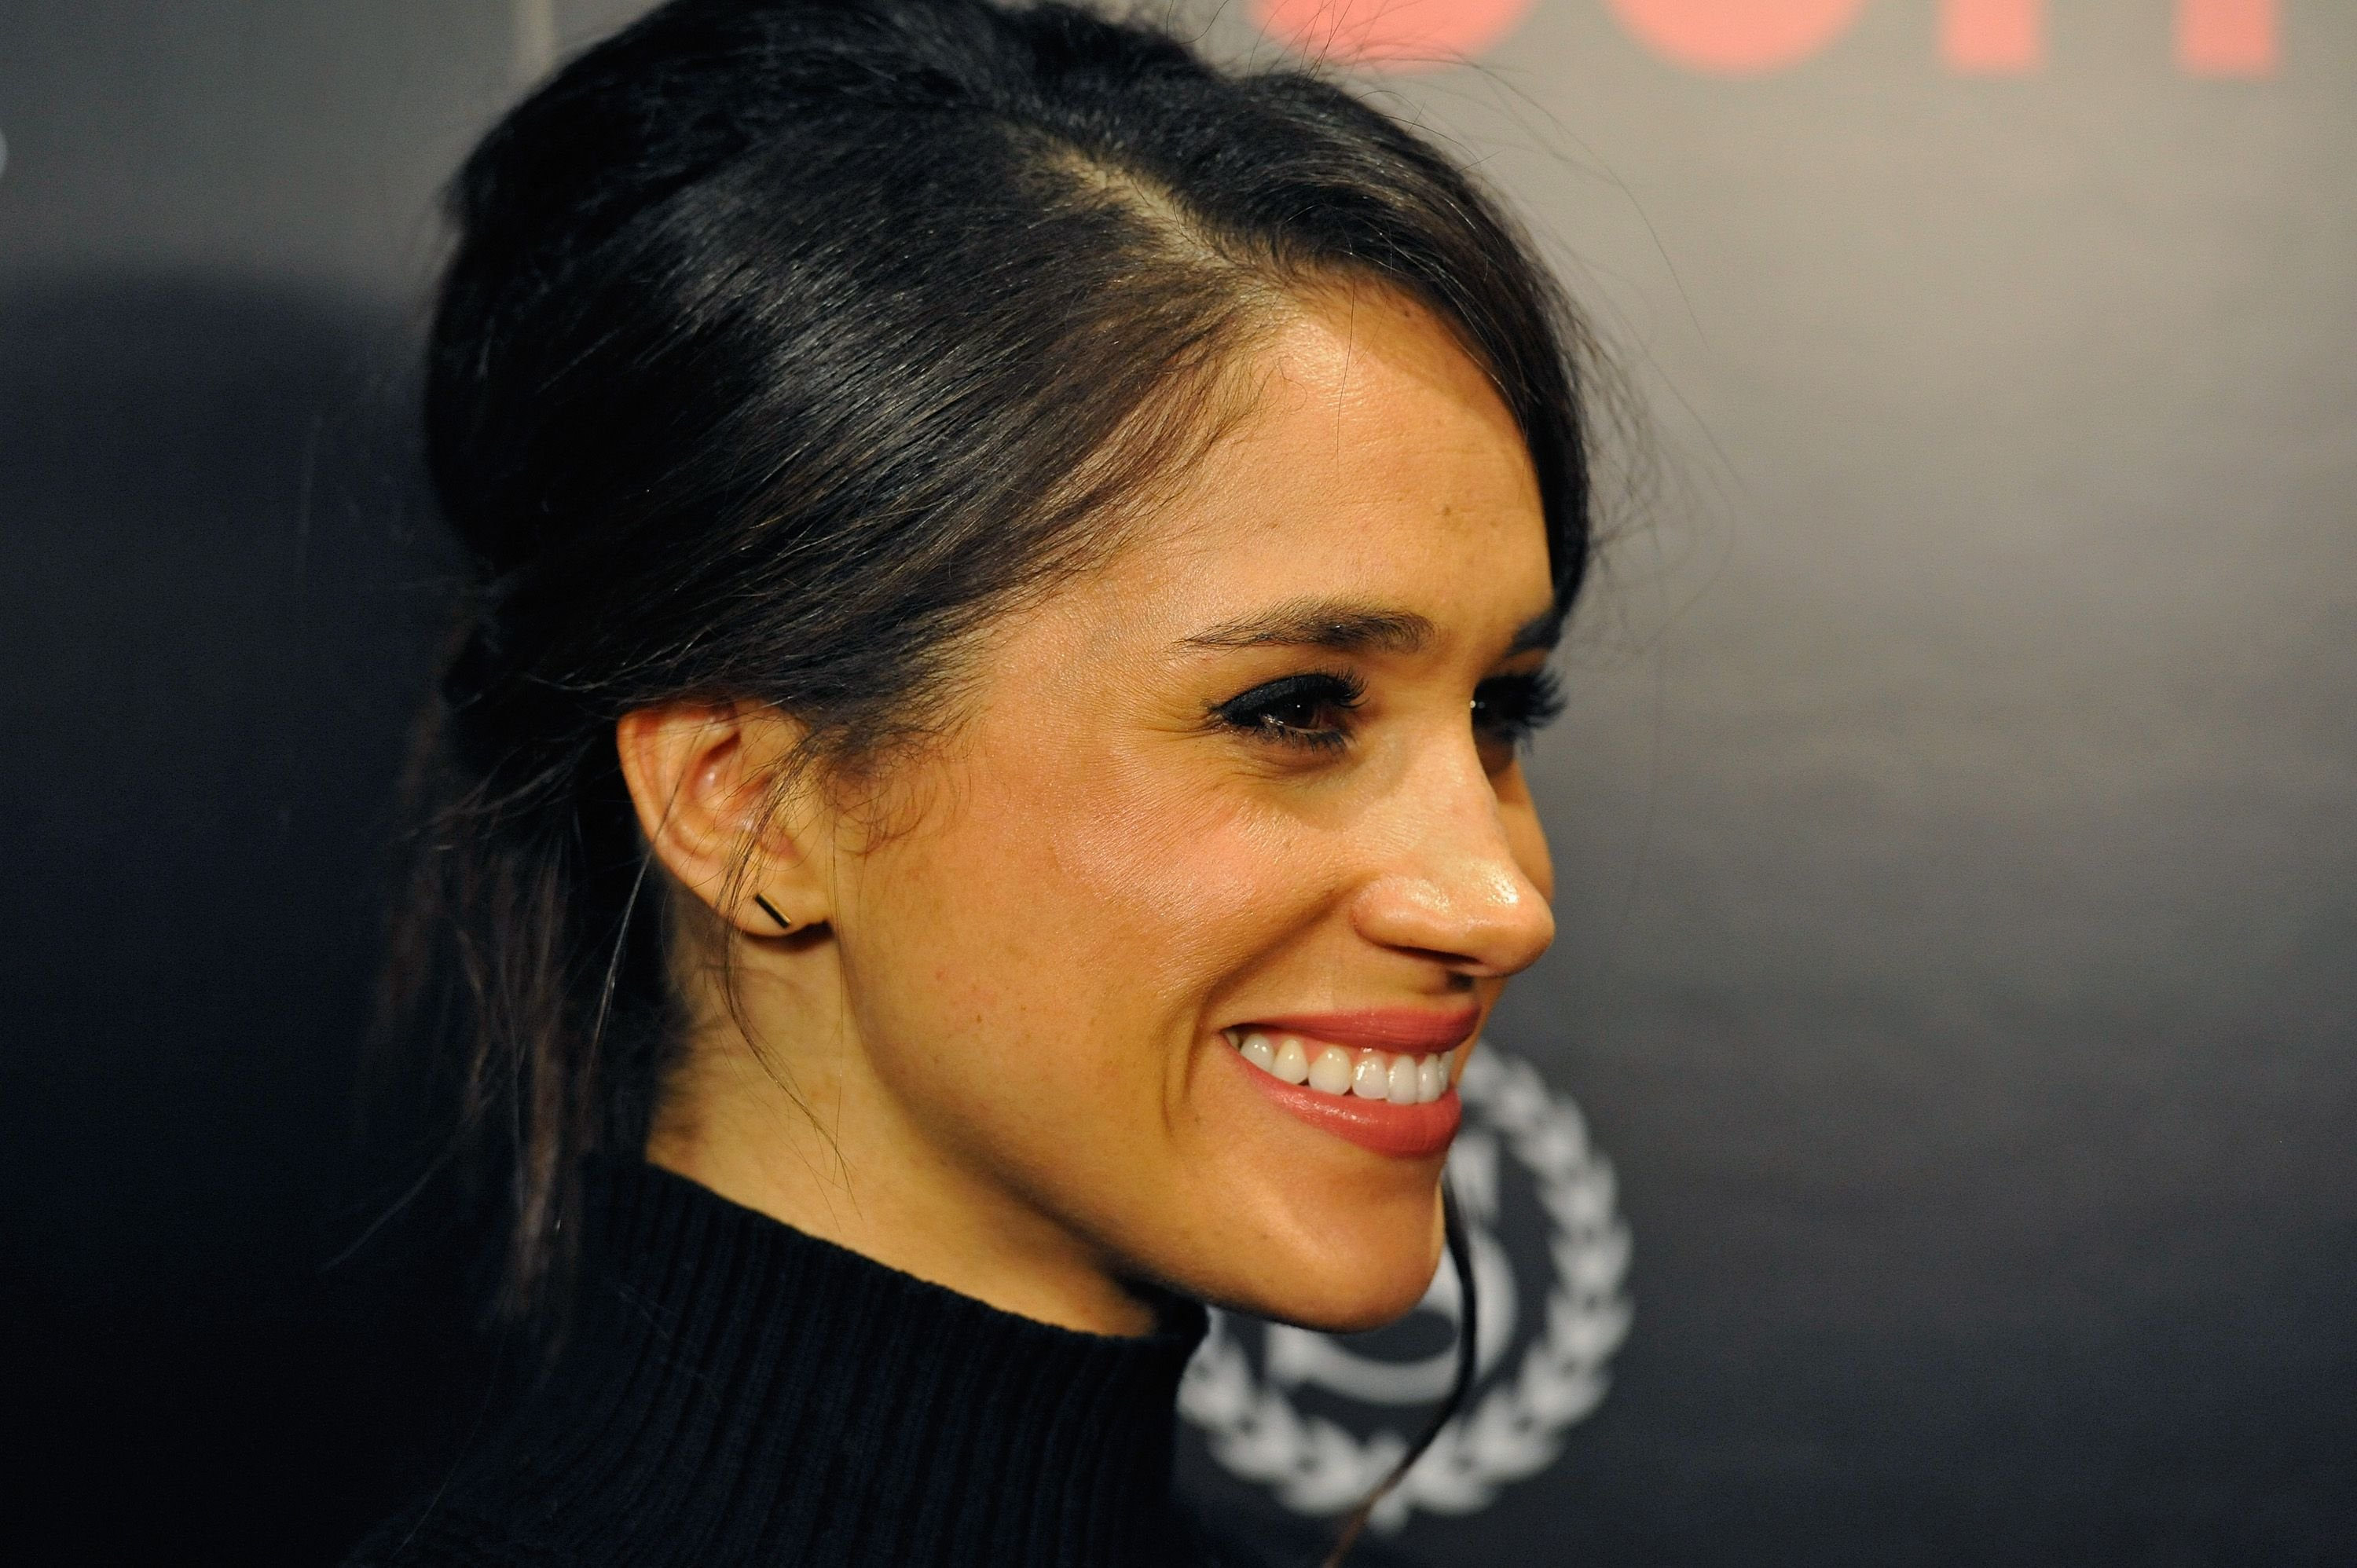 """Meghan Markle atthe premiere of USA Network's """"Suits"""" season five at Sheraton Los Angeles Downtown Hotel on January 21, 2016, inCalifornia 